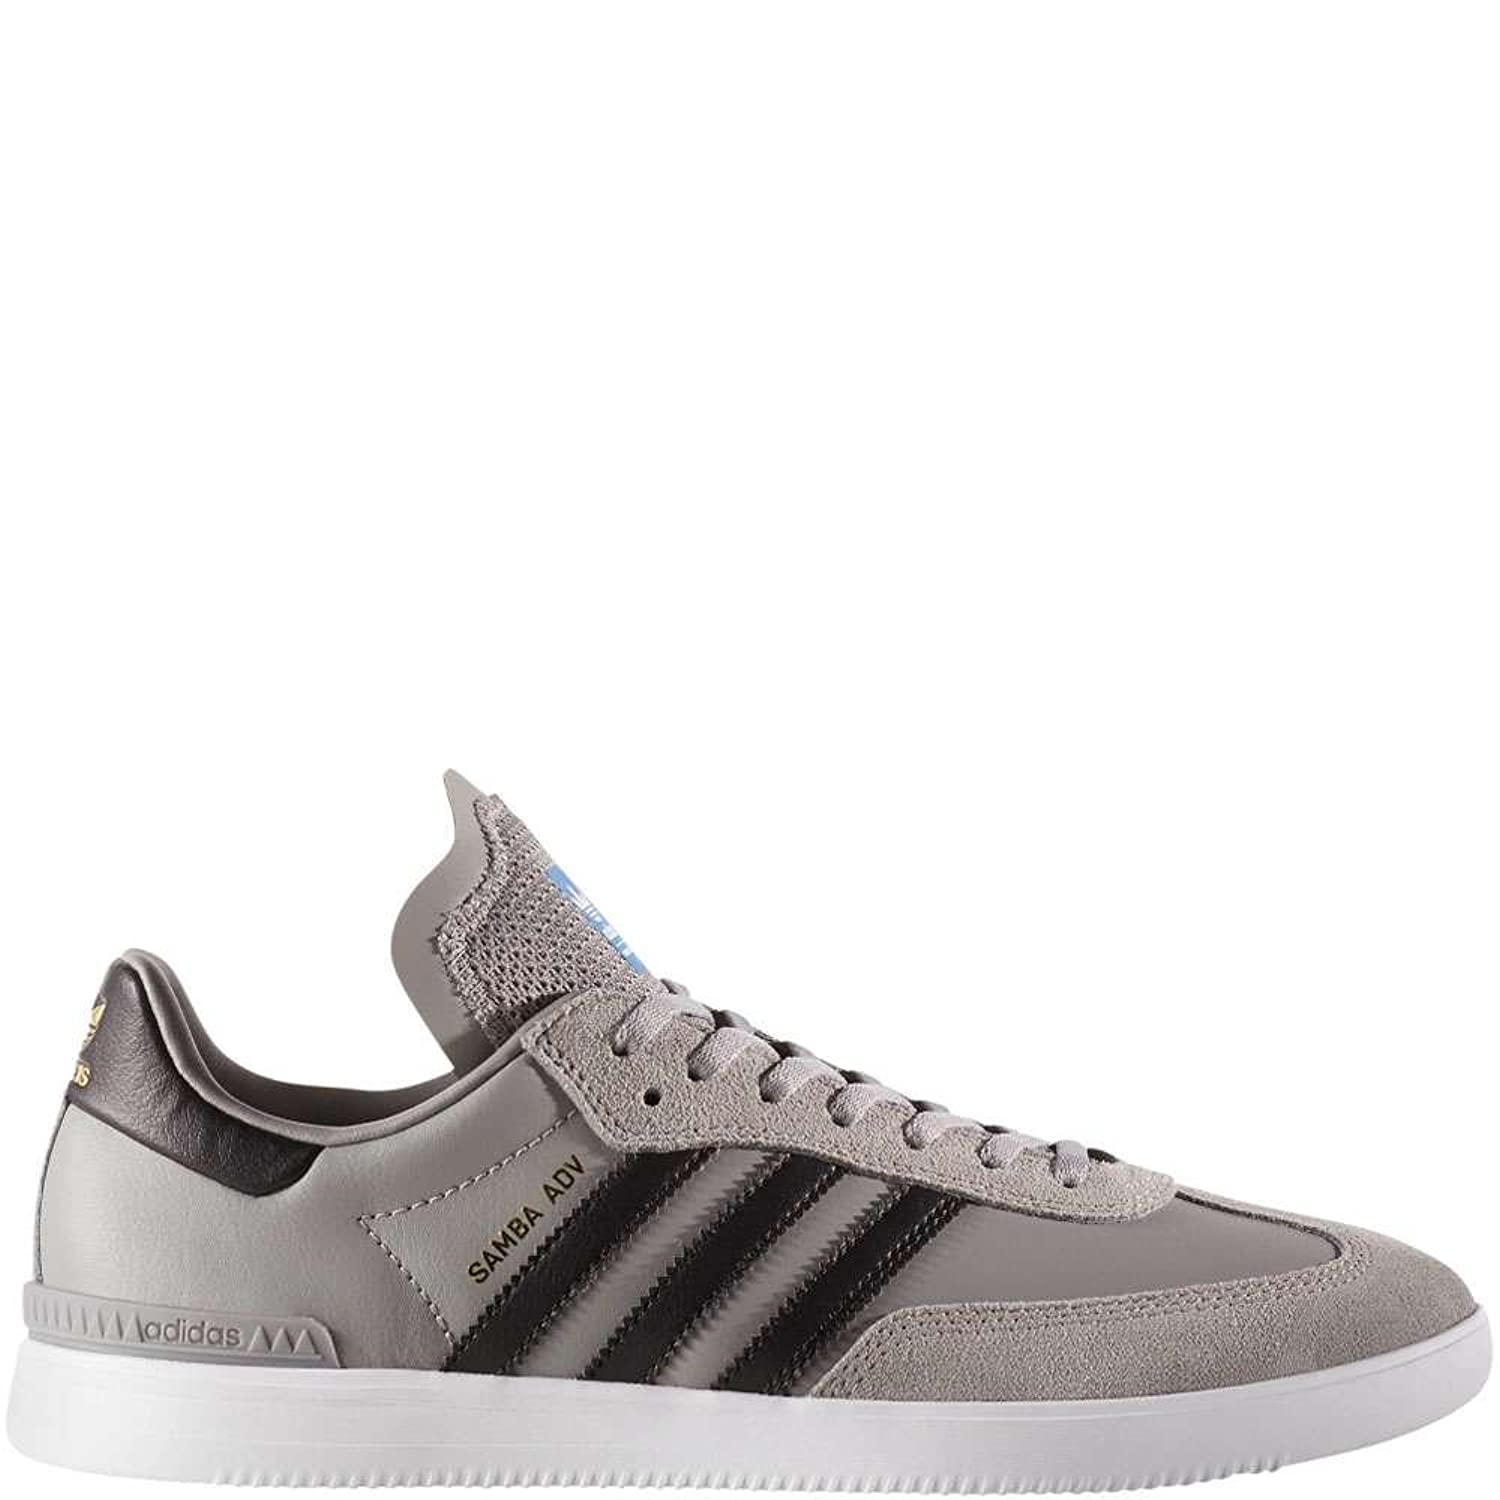 Adidas Samba Adv Skate Shoes   Mens by Adidas